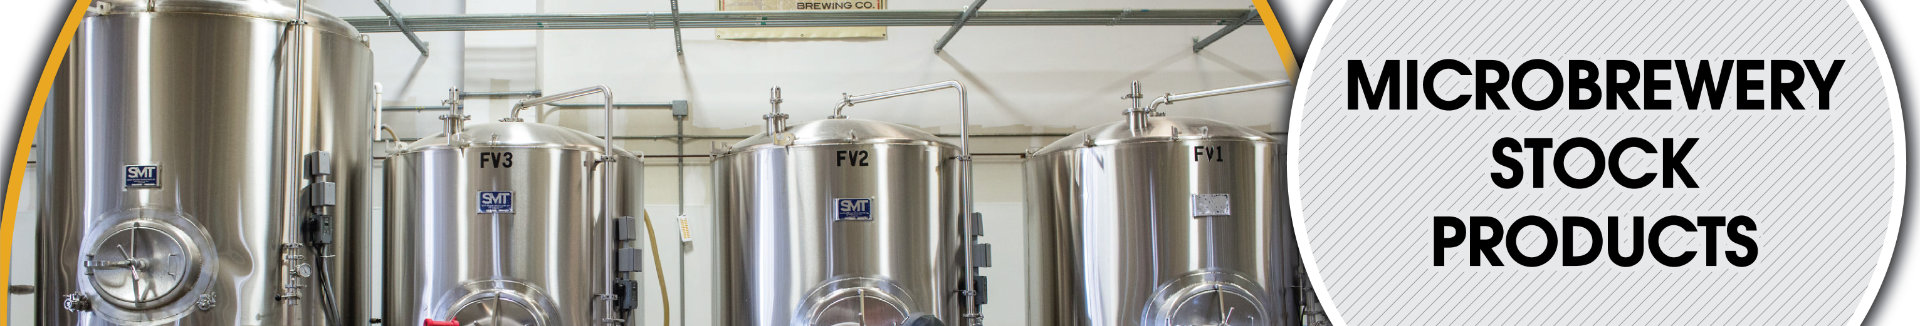 Microbrewery Products